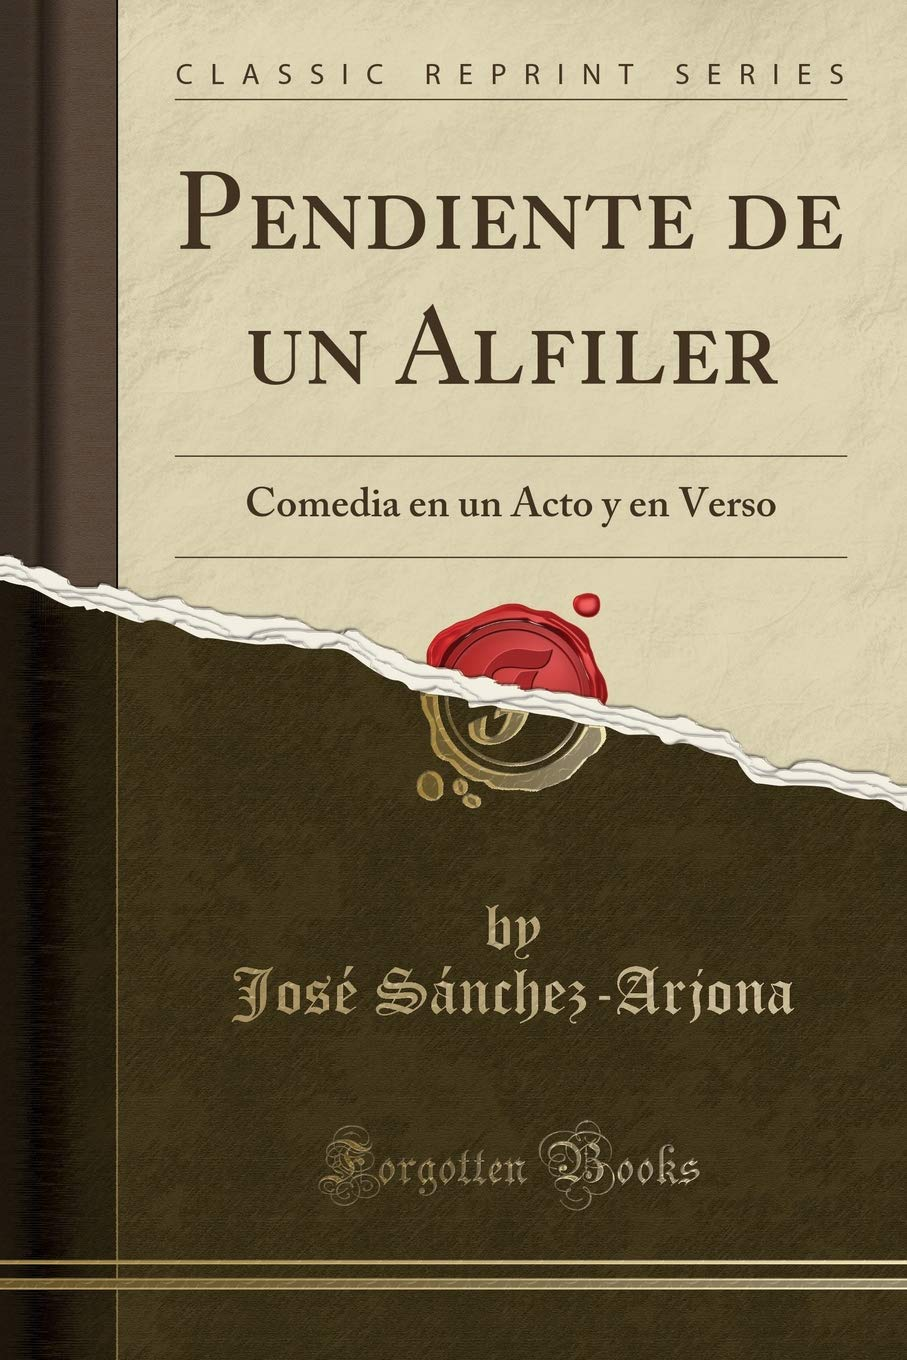 Pendiente de Un Alfiler: Comedia En Un Acto Y En Verso (Classic Reprint) (Spanish Edition): Jose Sanchez-Arjona: 9781390392364: Amazon.com: Books